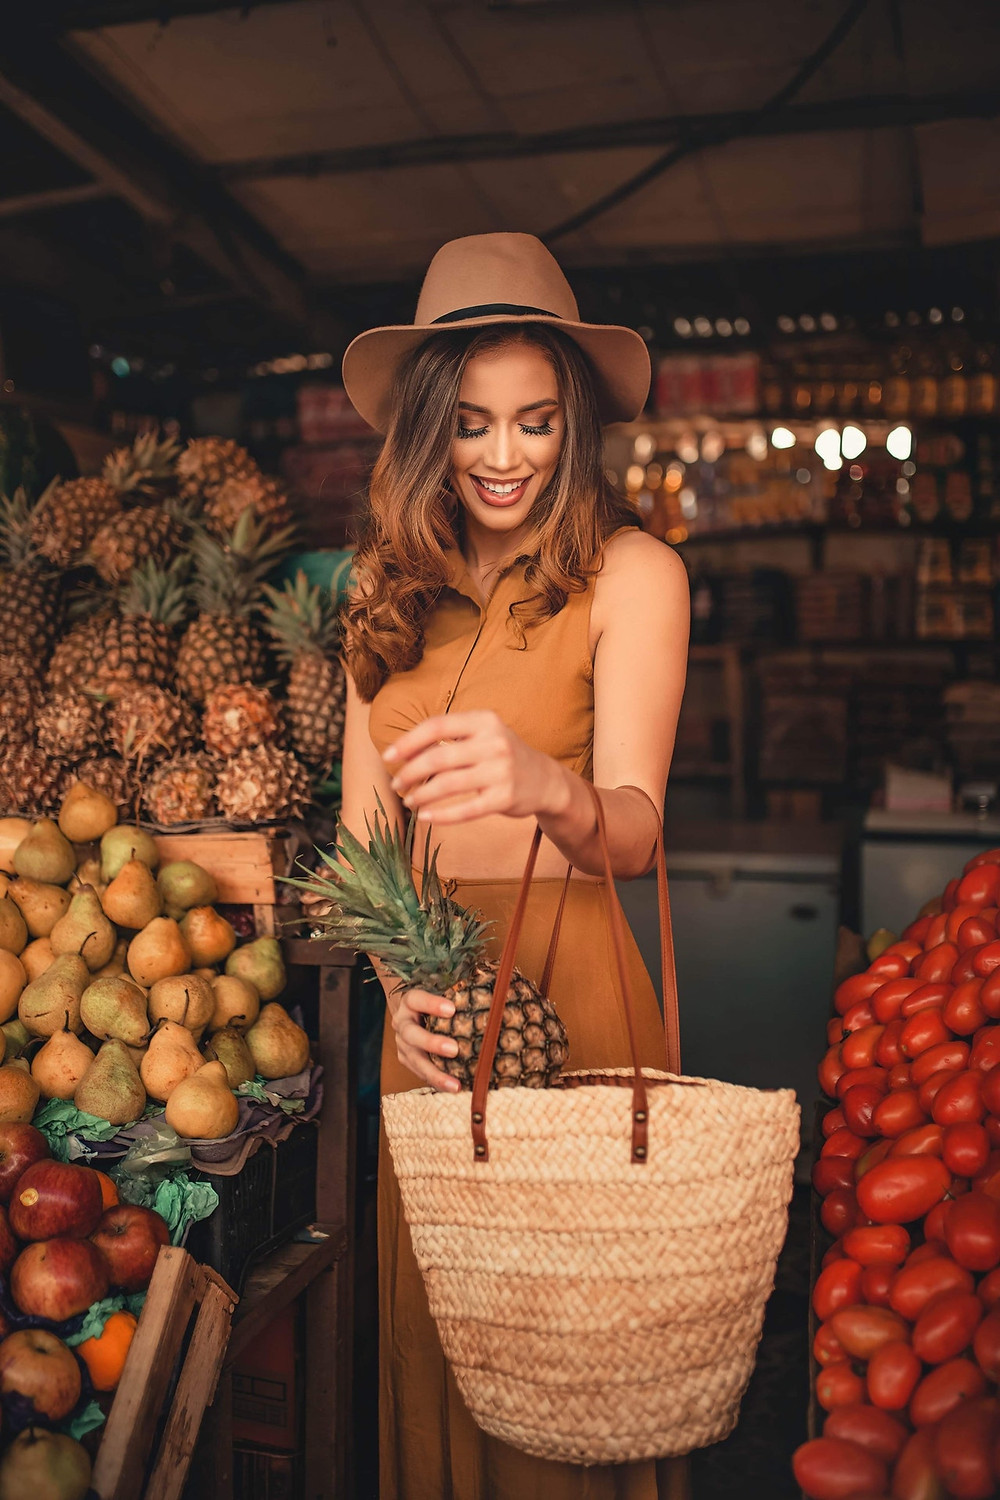 Pretty woman buying fruit